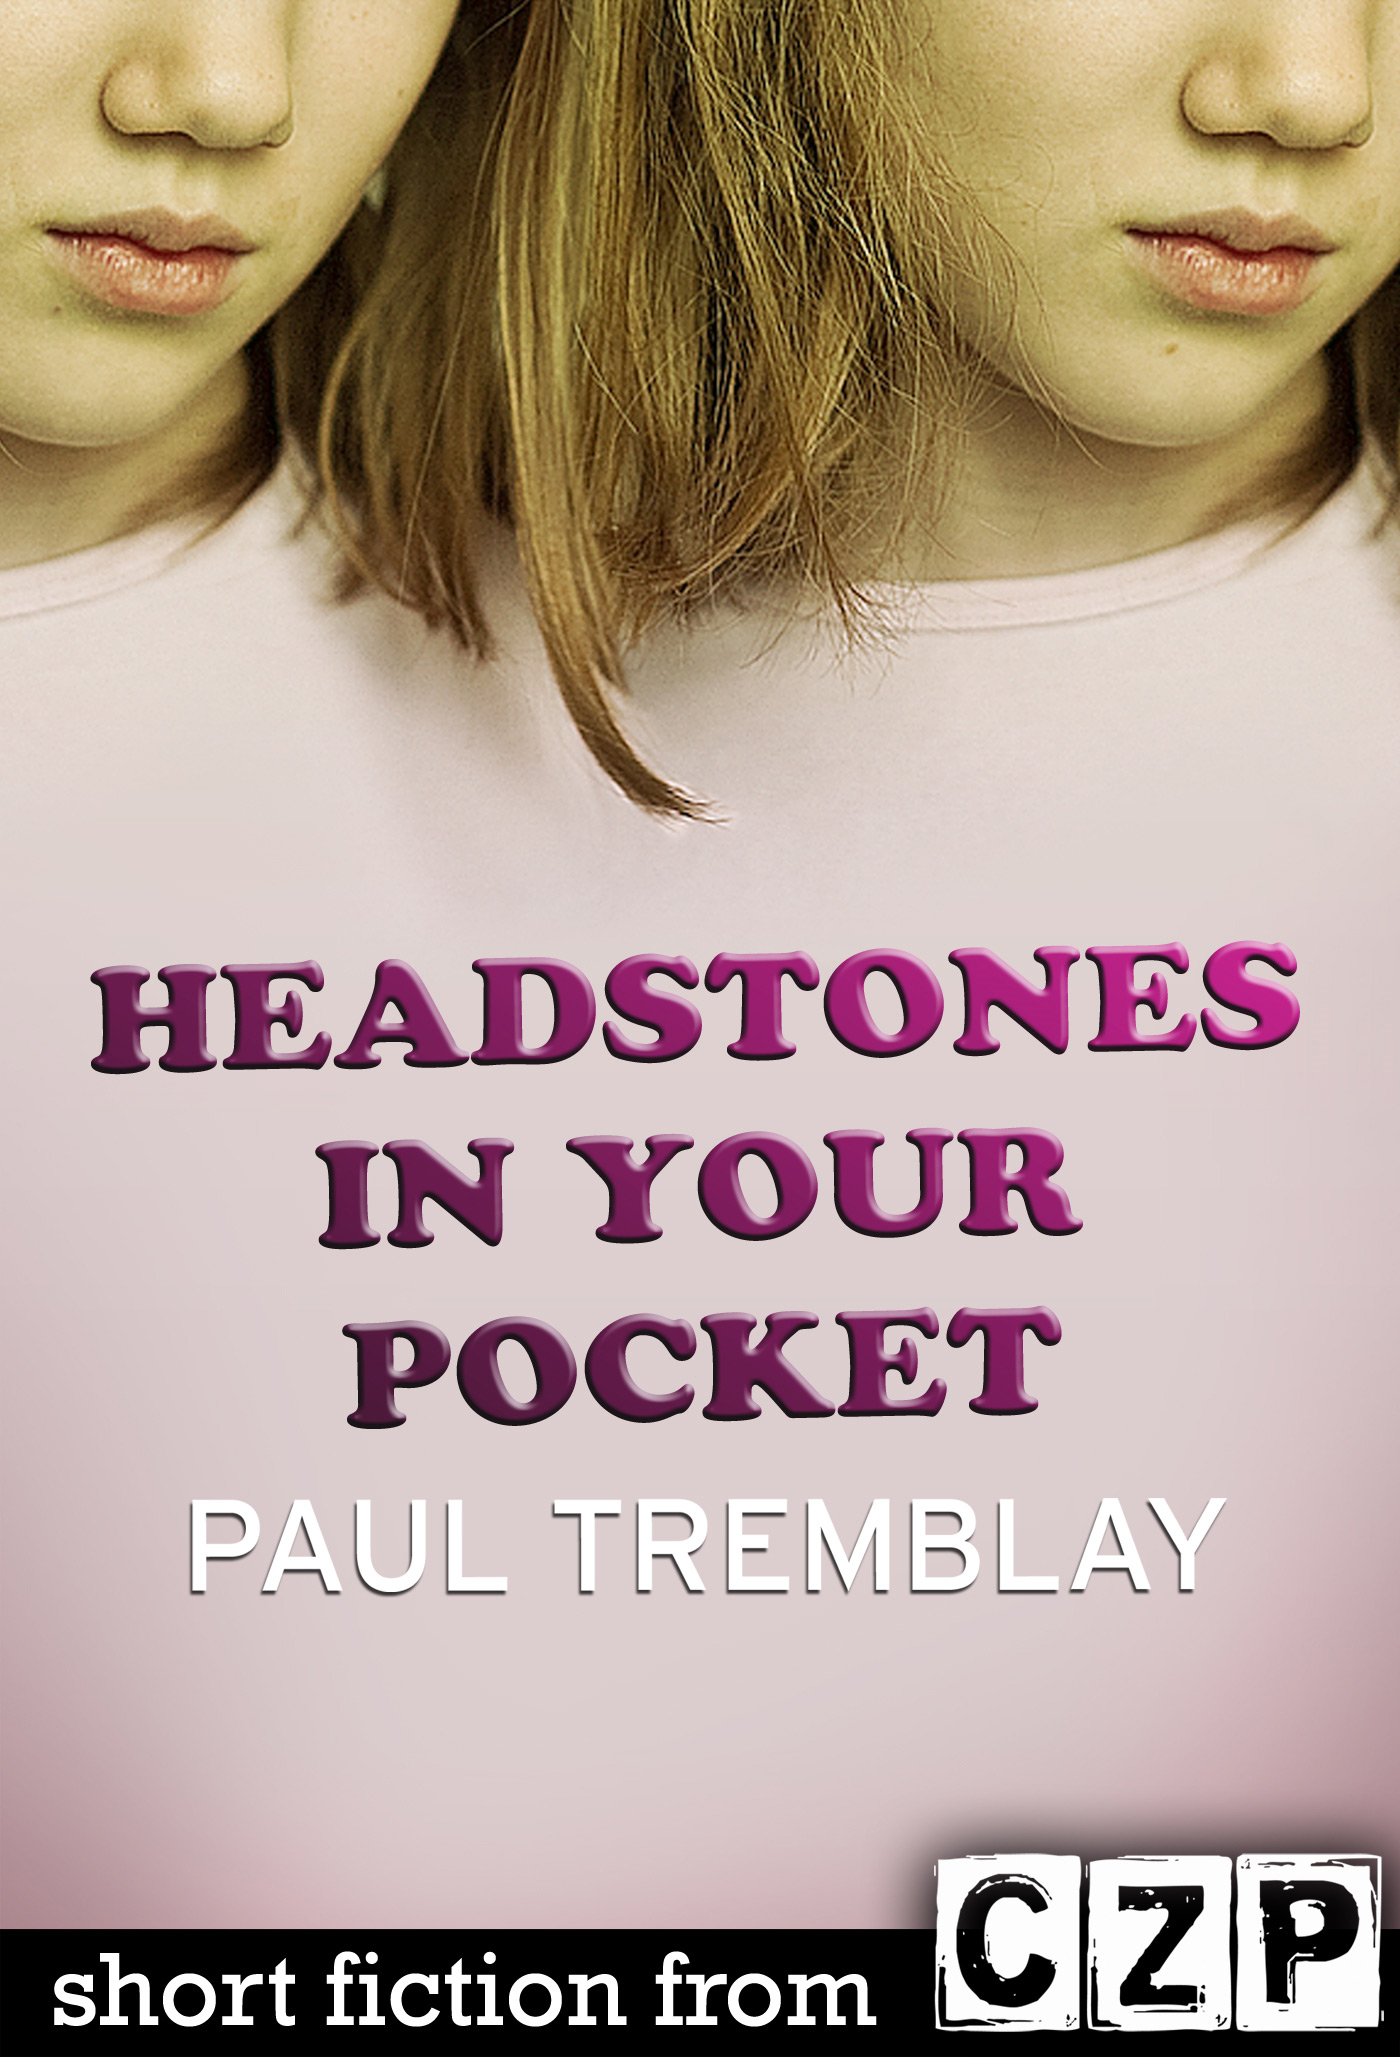 Headstones in Your Pocket